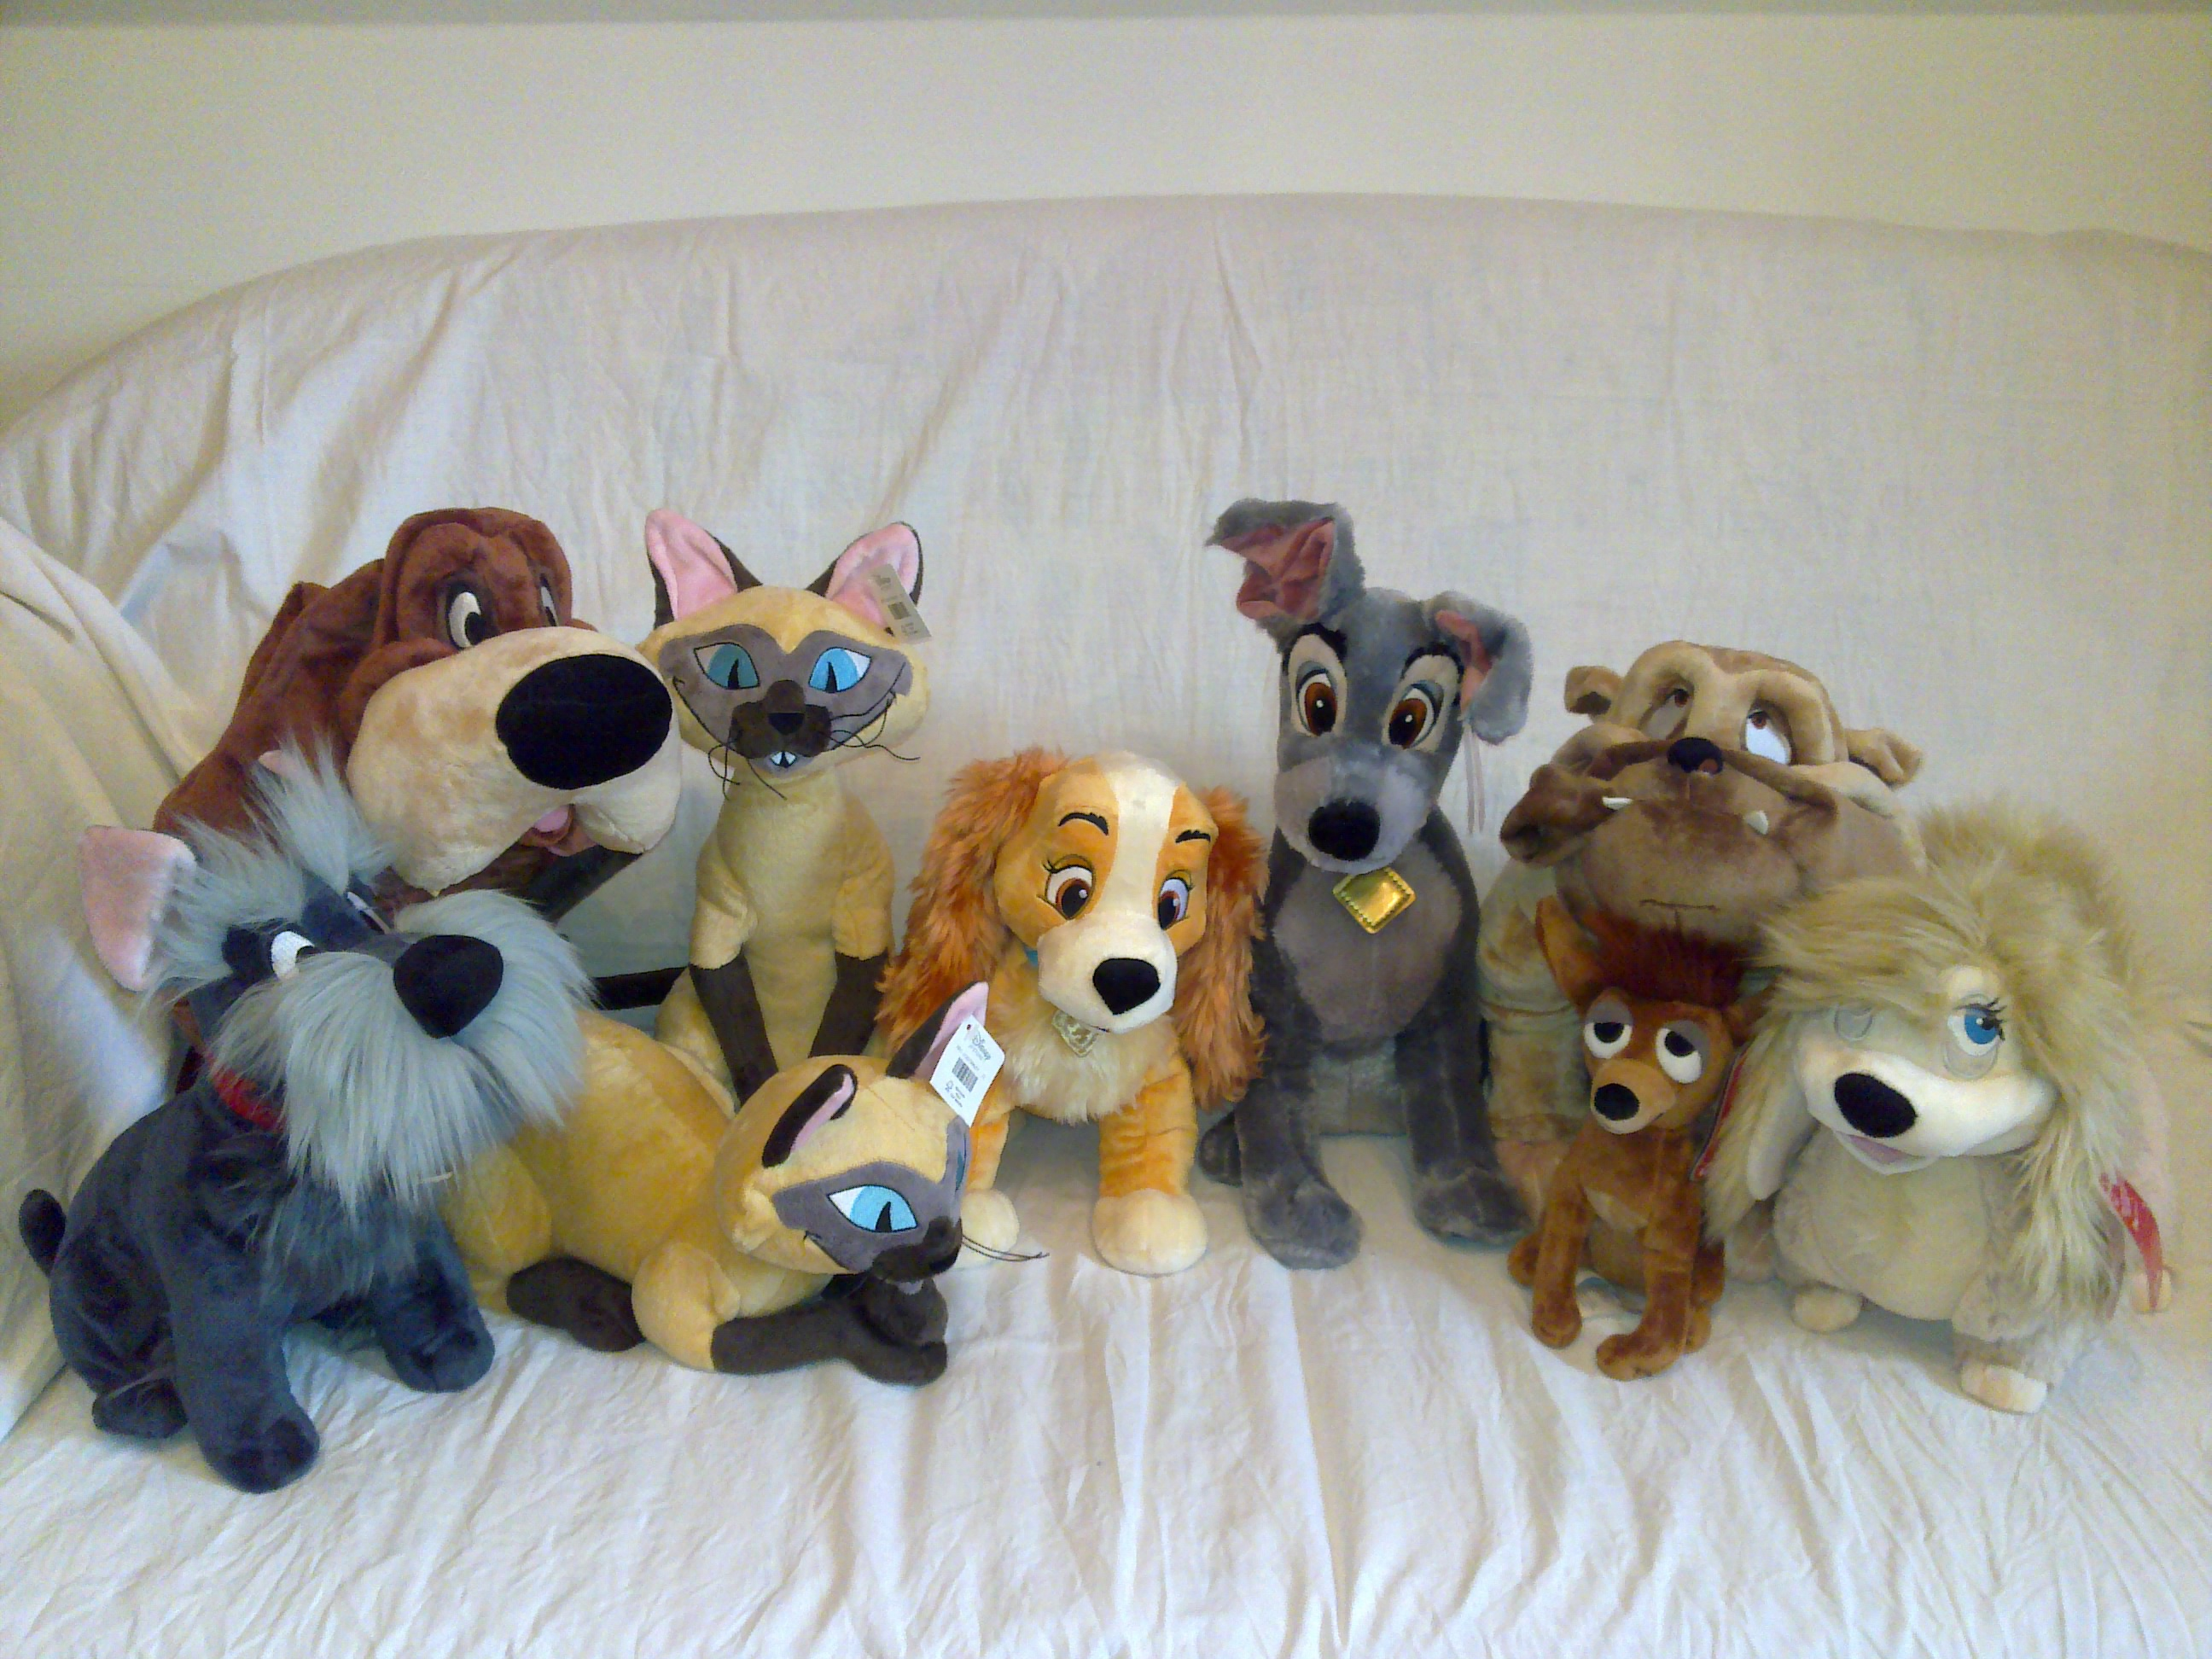 The Lady And The Tramp Plush By Frieda15 On Deviantart